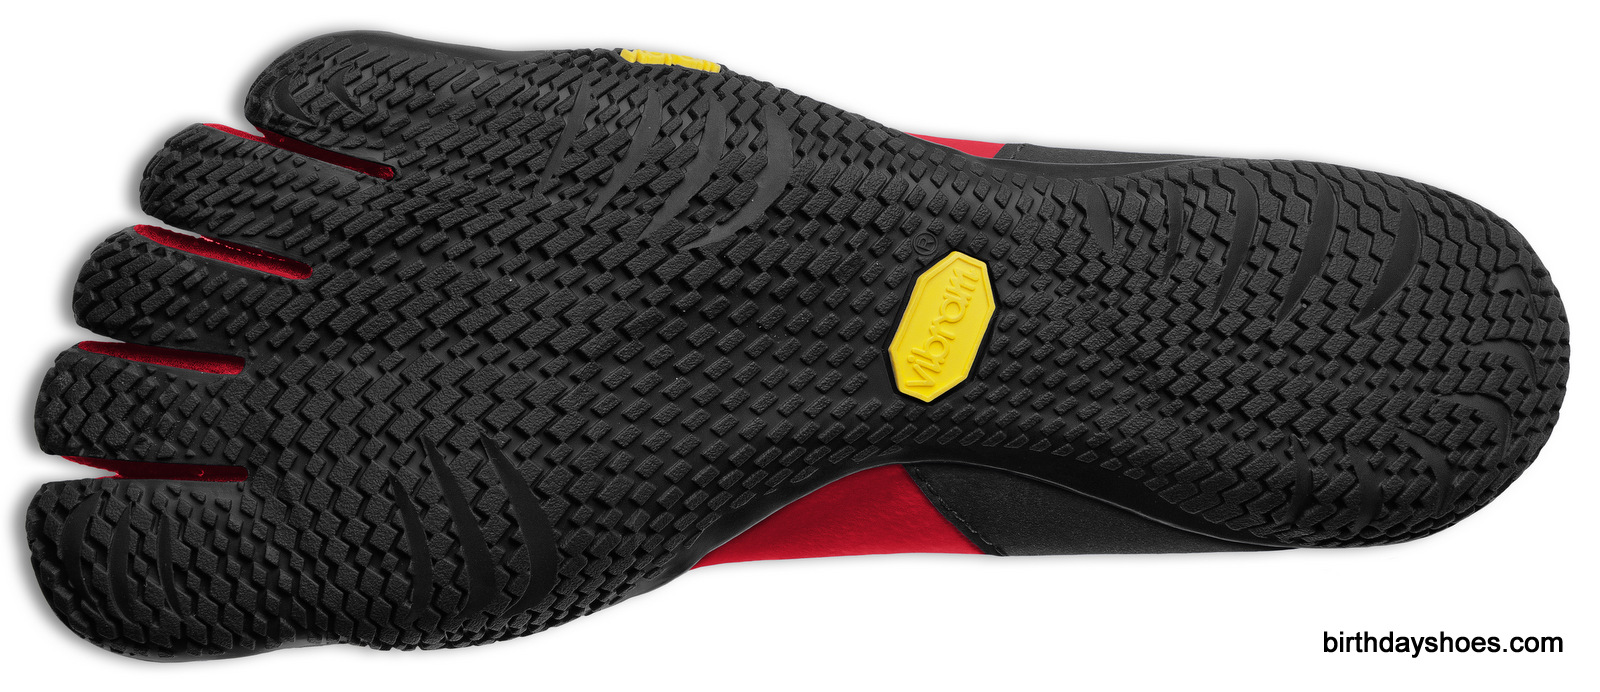 The Vibram KSO EVO features the same super-minimalist sole as the Vibram FiveFingers EL-X.